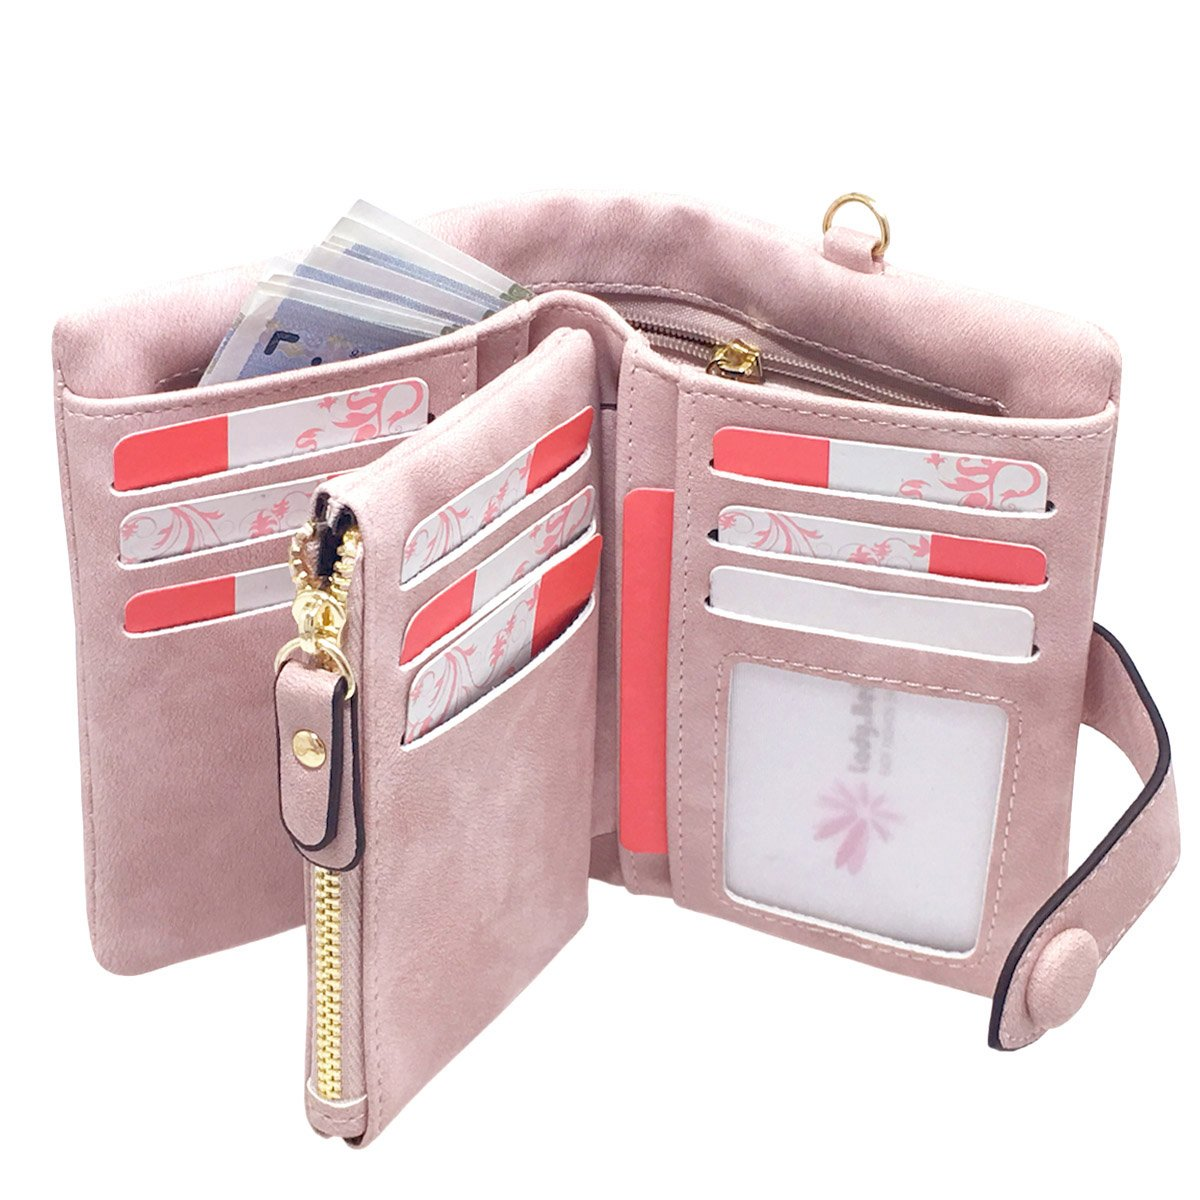 Rfid Leather Wallets for Women Ladies Wristlet Clutch Large Capacity Zipper Purse for Coins Card Holder Organizer(Pink) by YOTOO